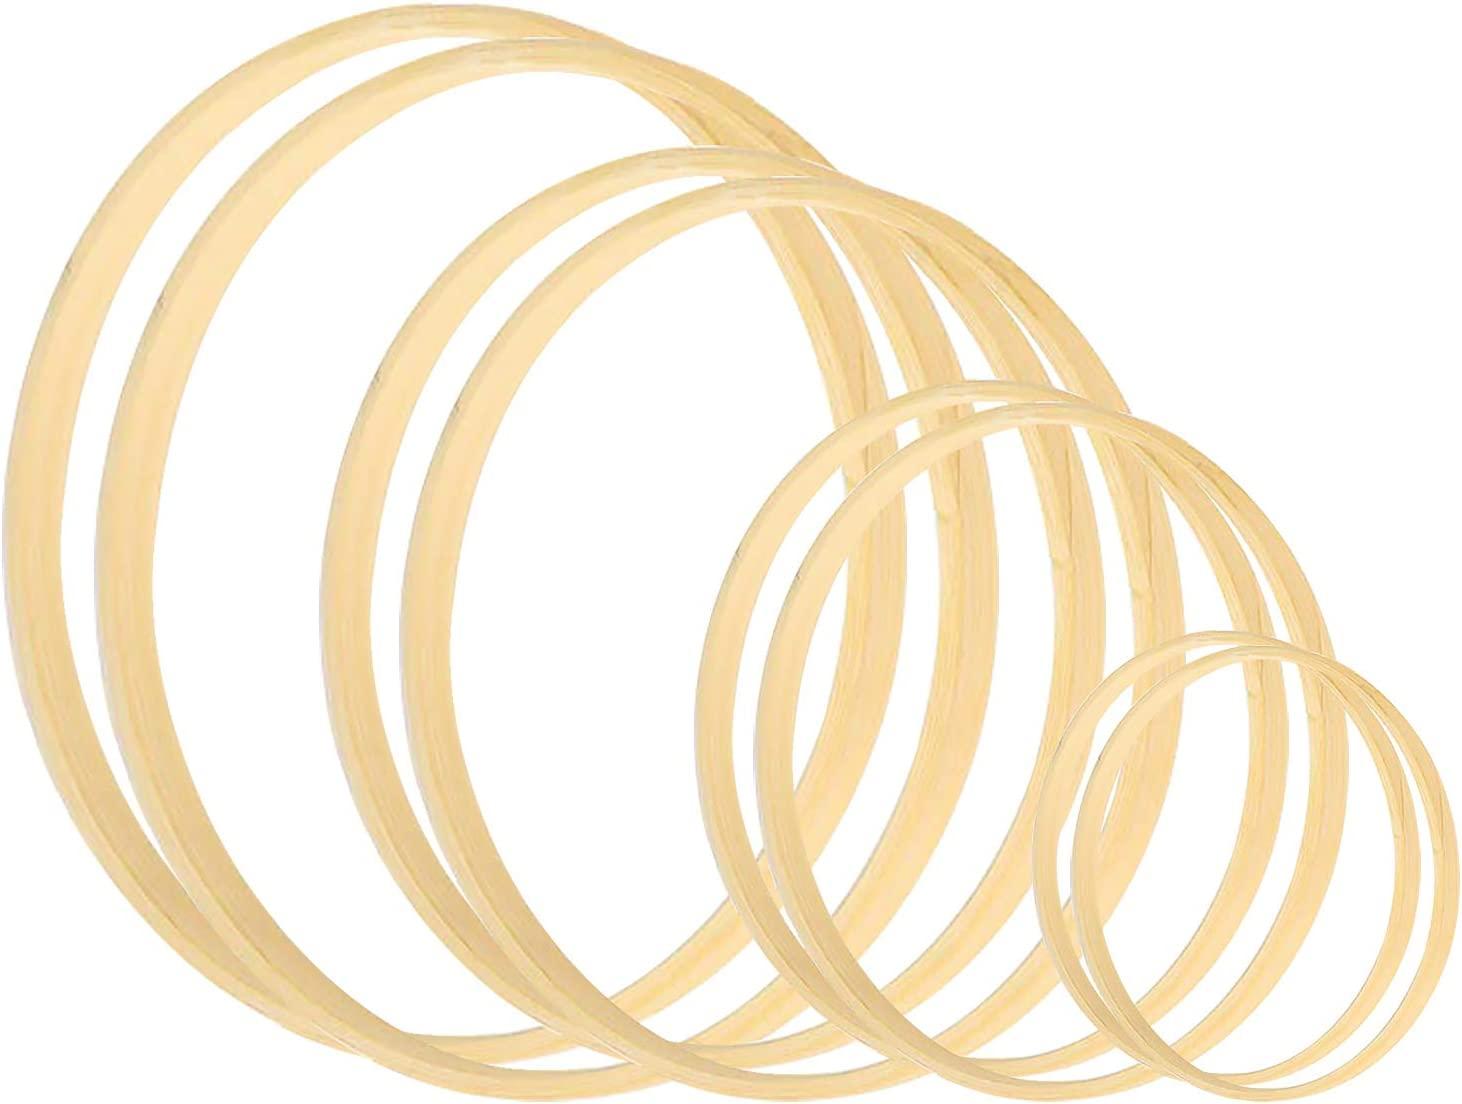 12 Pieces 6 Sizes Wooden Bamboo Floral Hoop Set Macrame Craft Rings DIY Decor